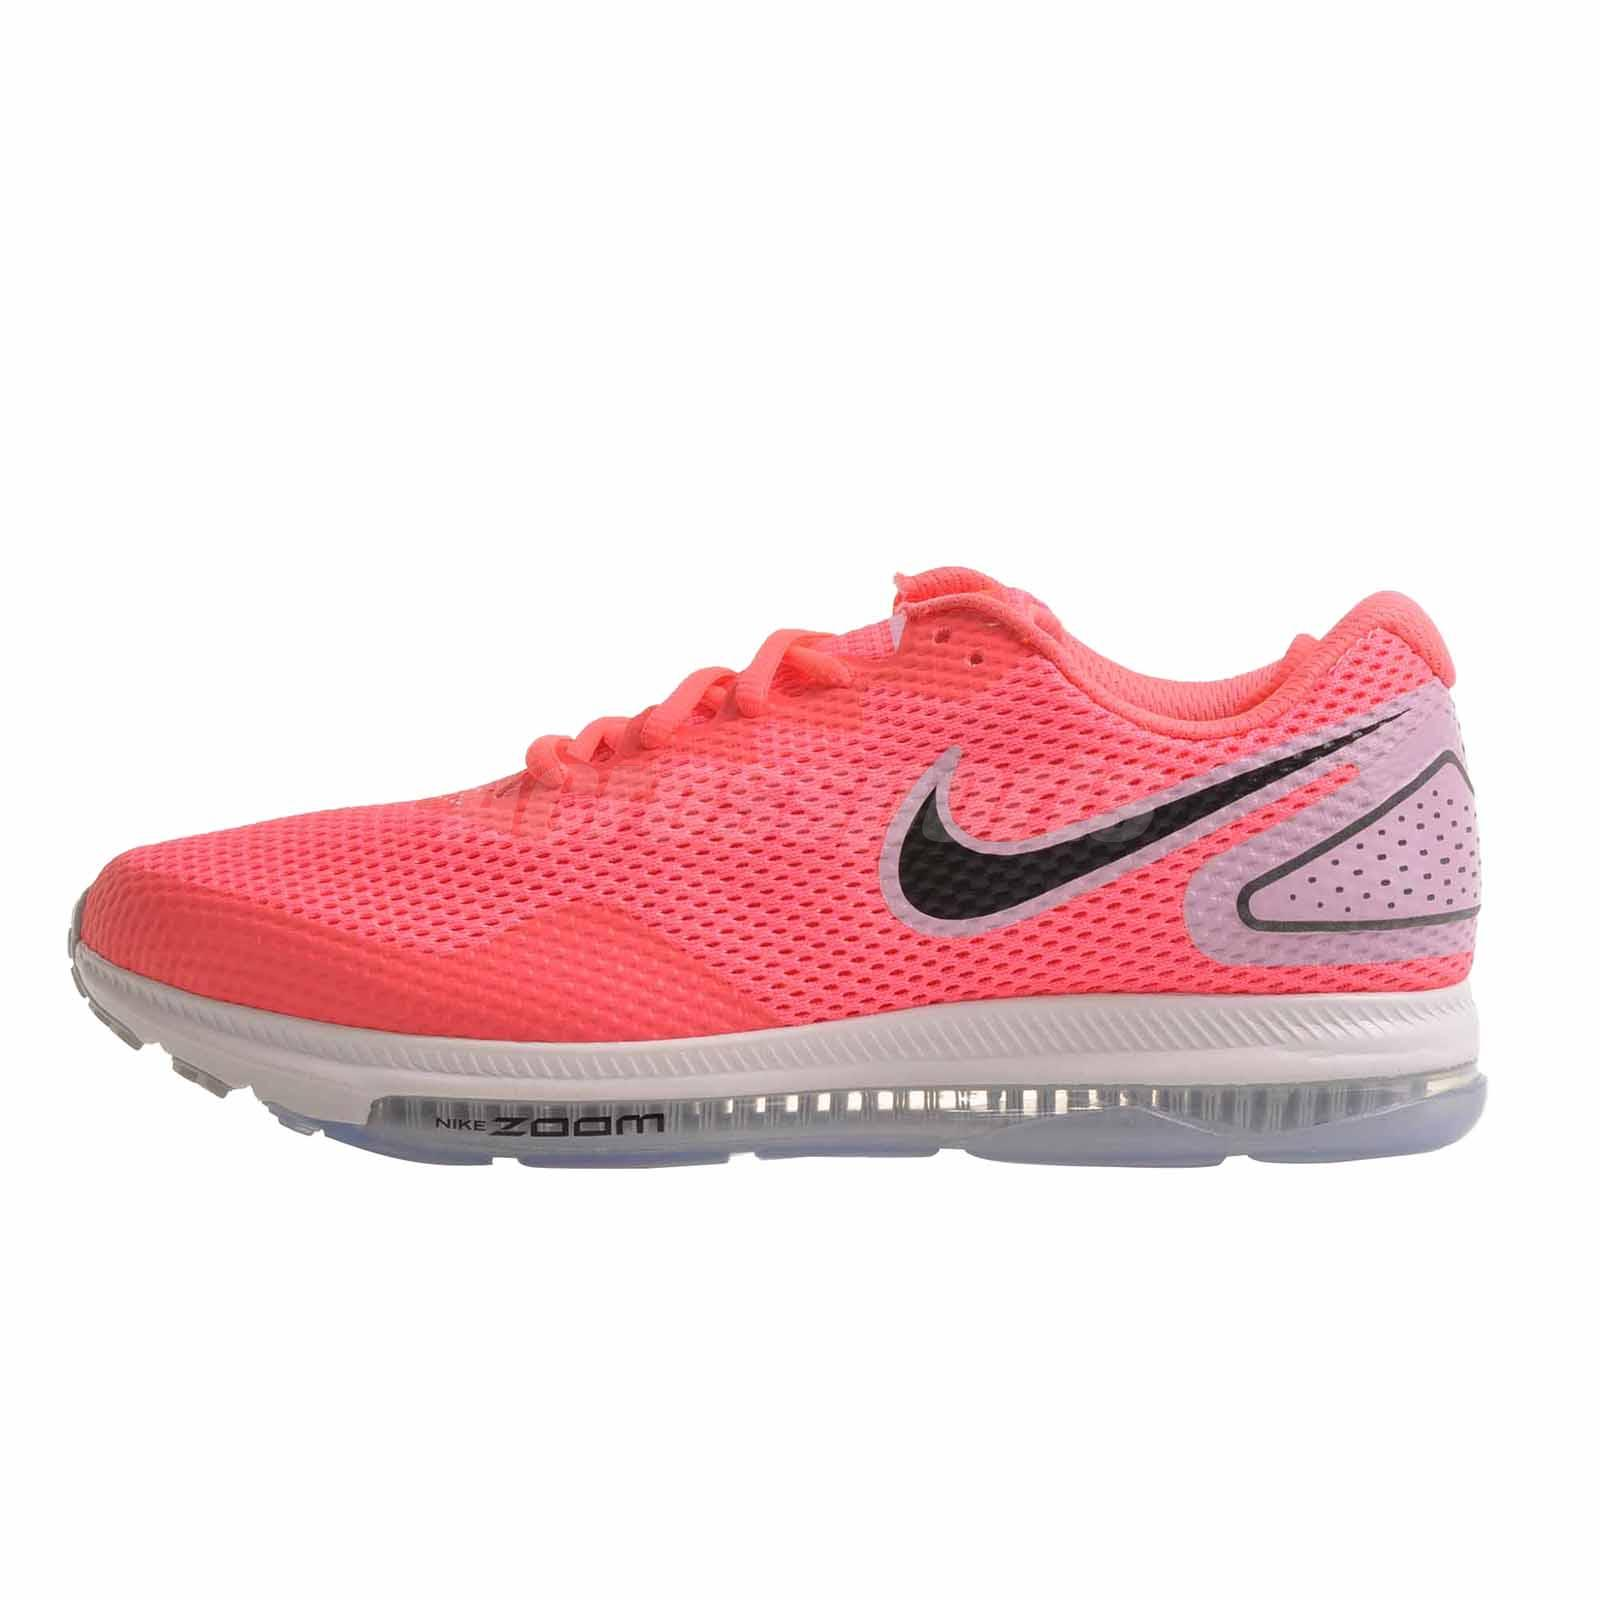 3f7076618201 Details about Nike Wmns Zoom All Out Low 2 Running Womens Shoes Hot Punch  NWOB AJ0036-603